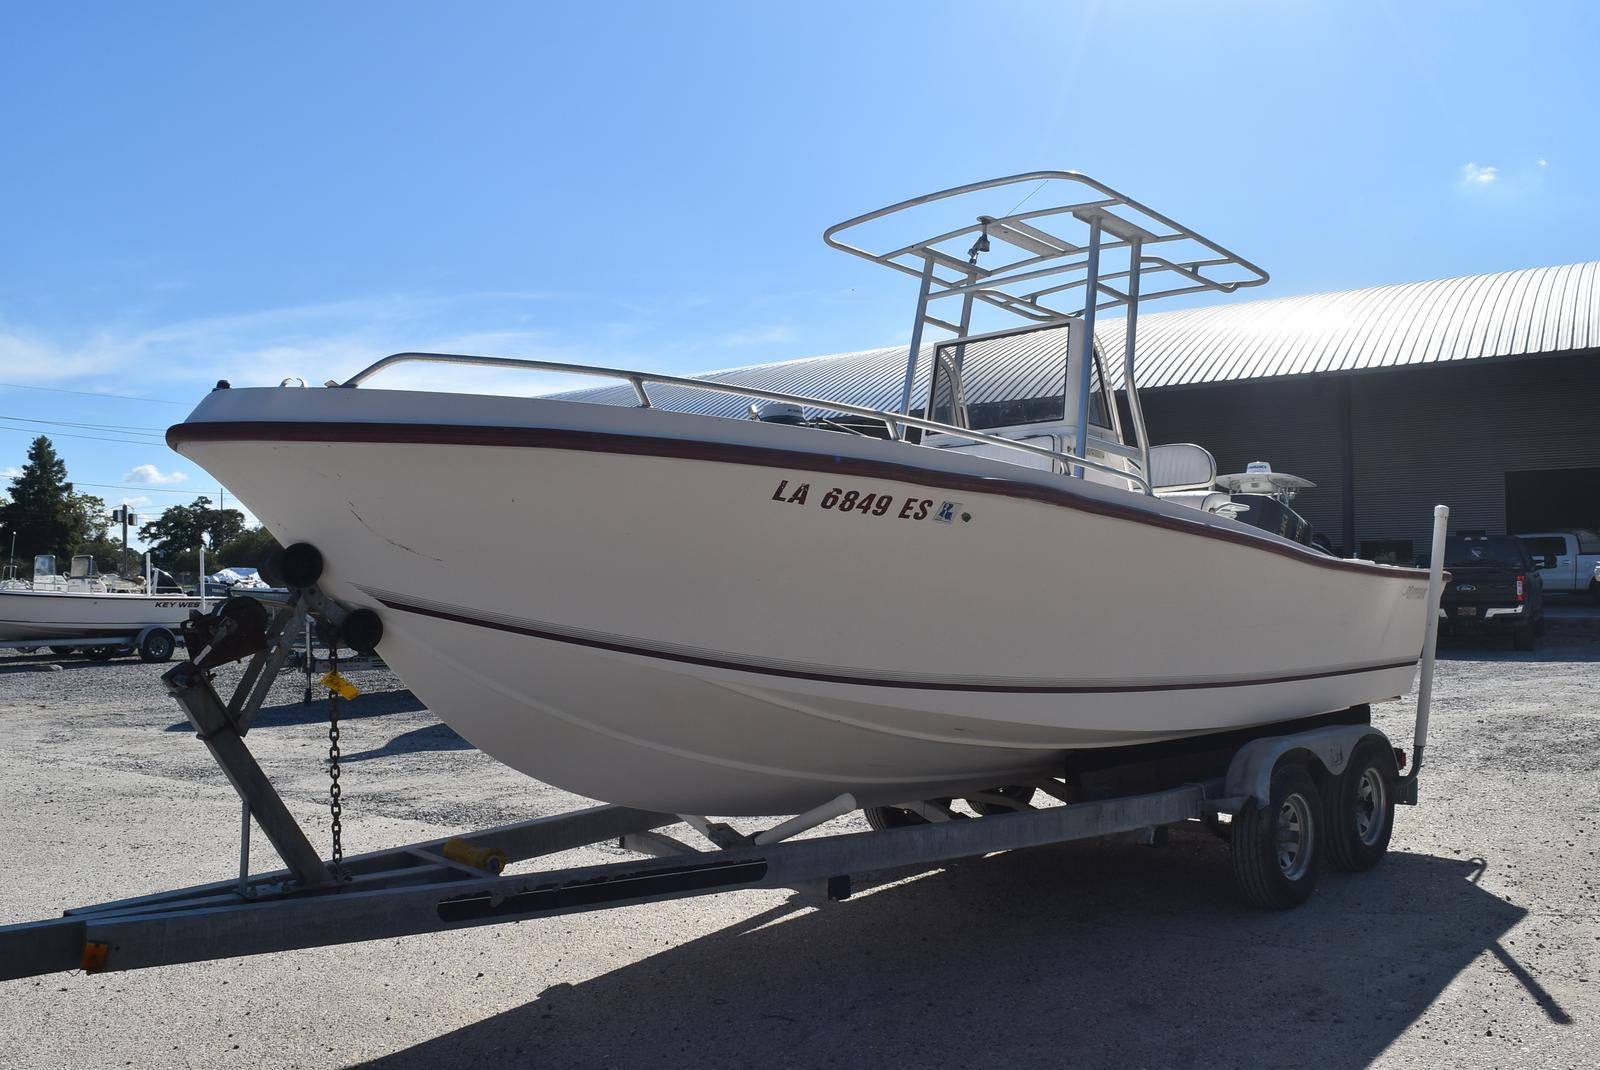 1996 Mako boat for sale, model of the boat is 22 Mako & Image # 21 of 26